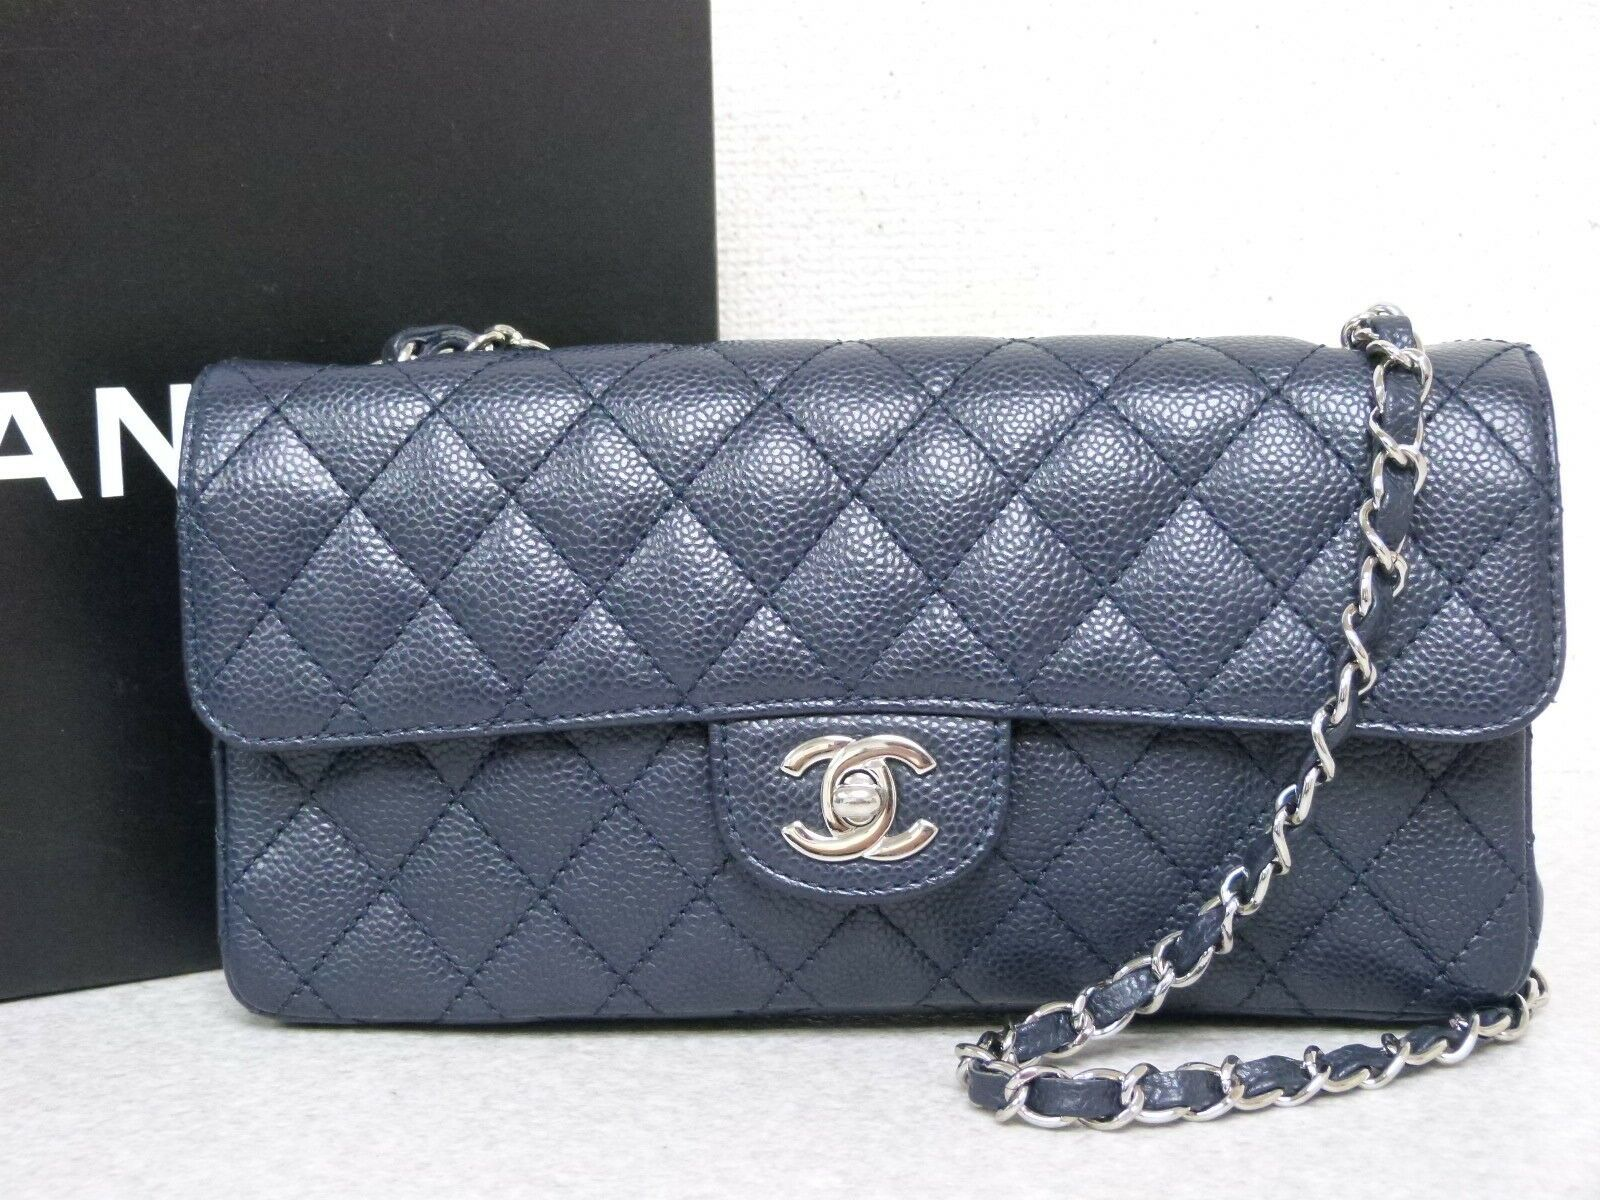 ec0335916771 #FORSALE ra5390 Auth CHANEL Navy Quilted Caviar Skin CC Turn Lock Chain Shoulder  Bag - $650